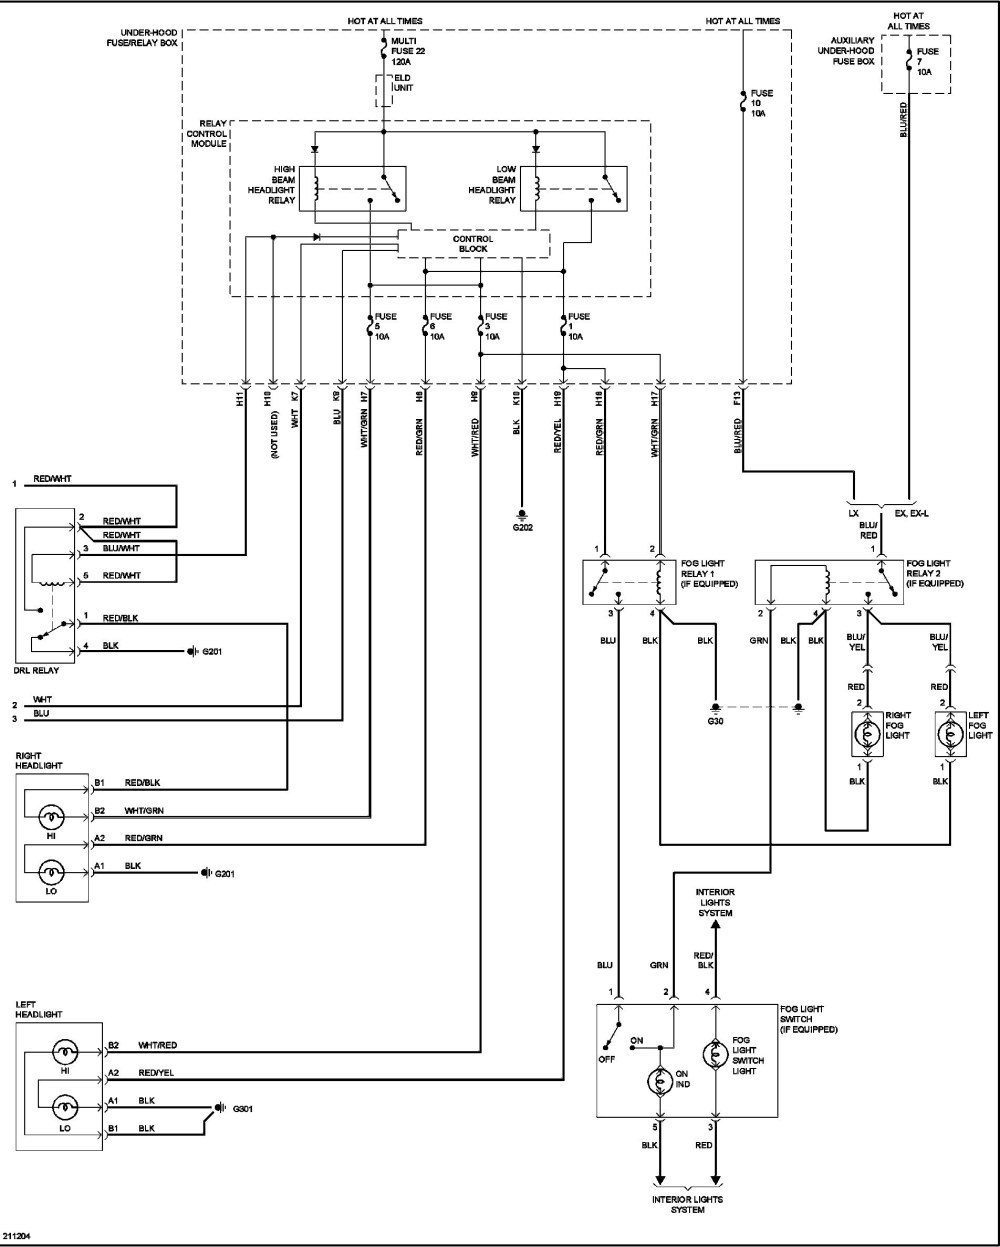 medium resolution of odyssey 1000 wiring diagram wiring diagram technic overhead door odyssey 1000 wiring diagram odyssey 1000 wiring diagram